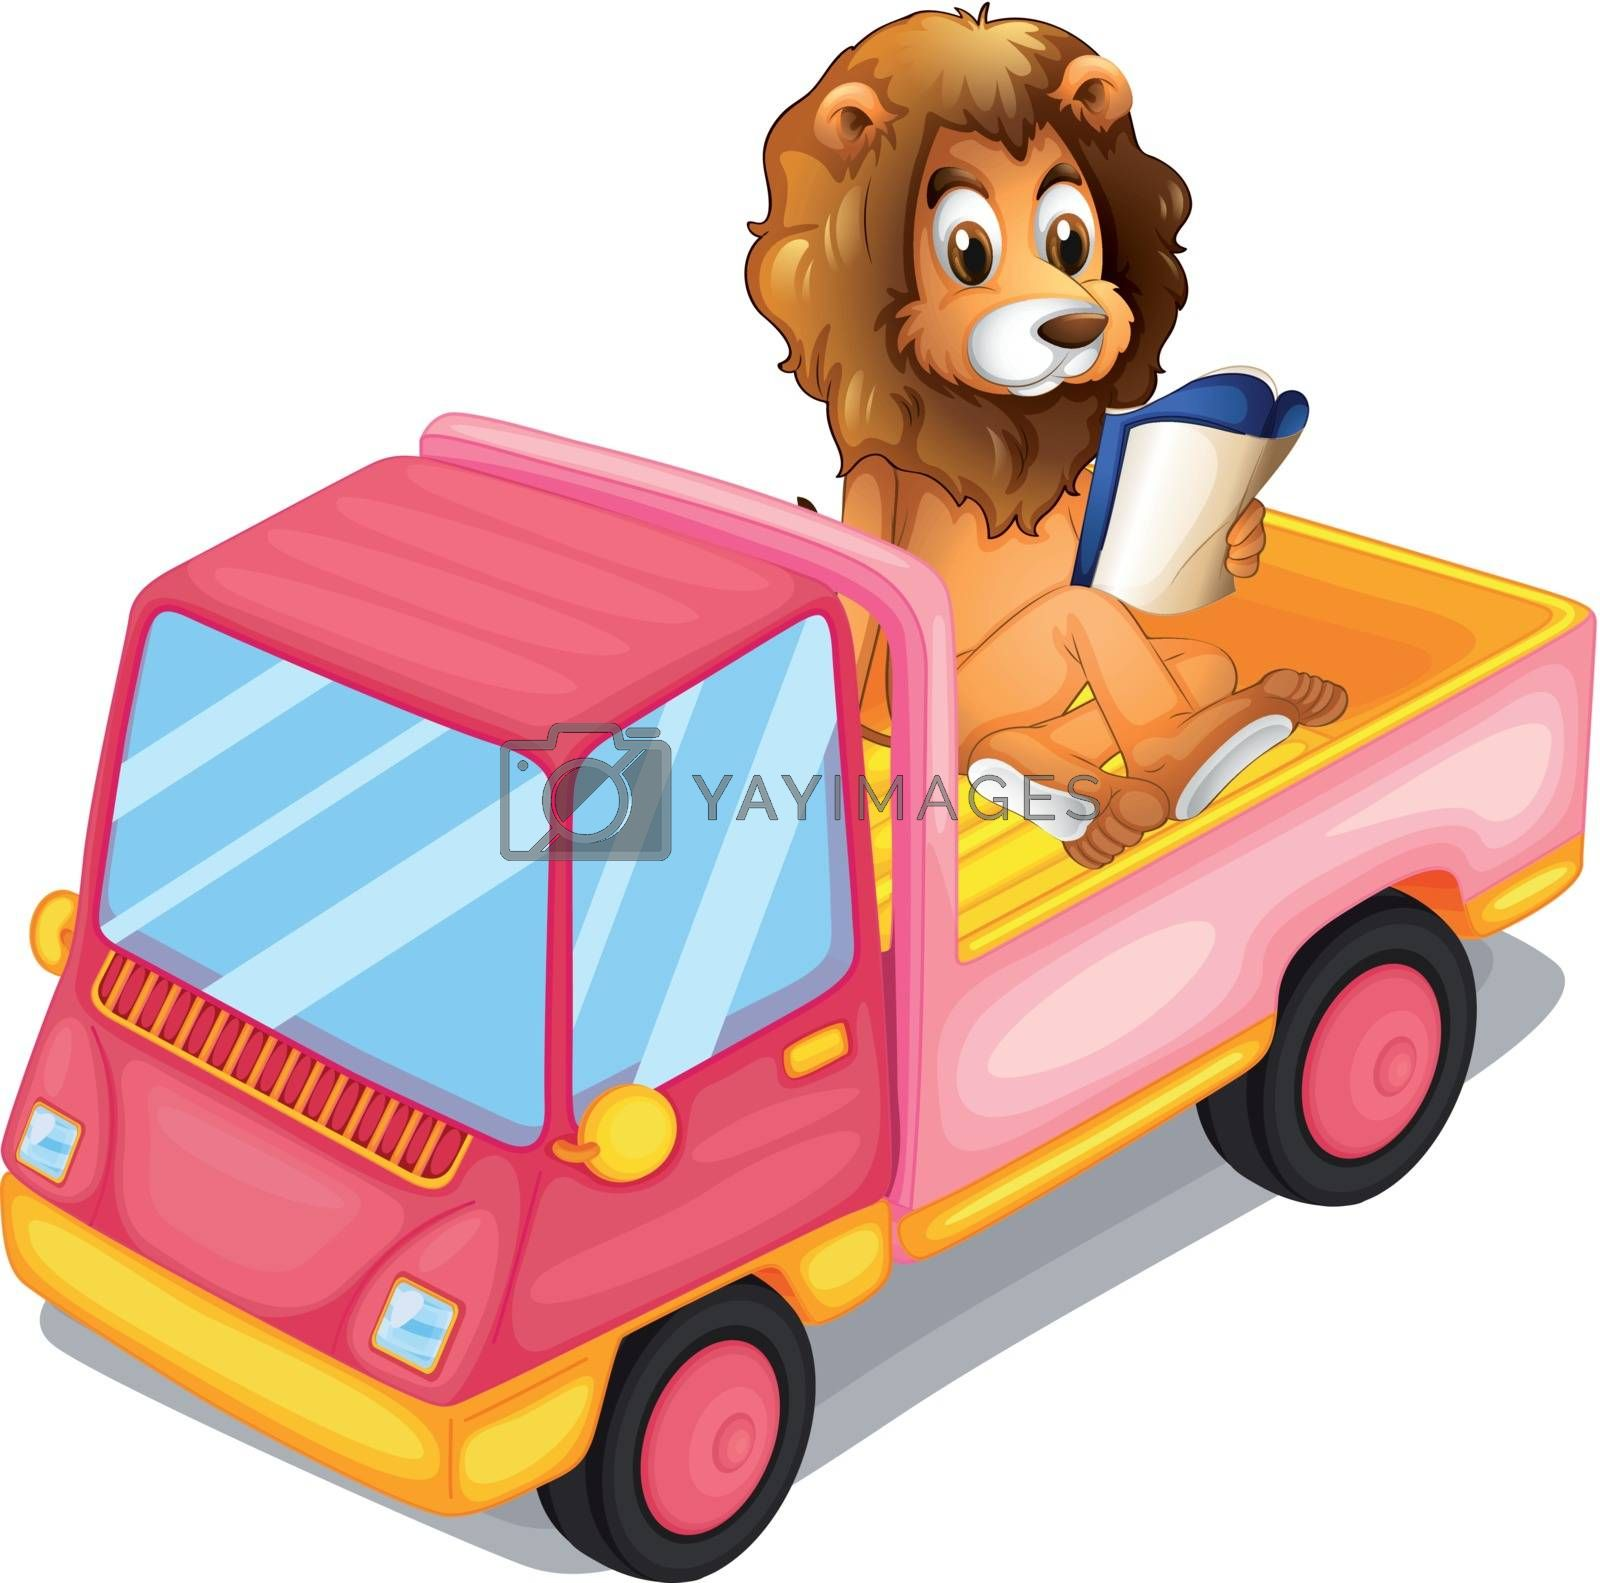 Illustration of a lion reading a book at the back of a truck on a white background